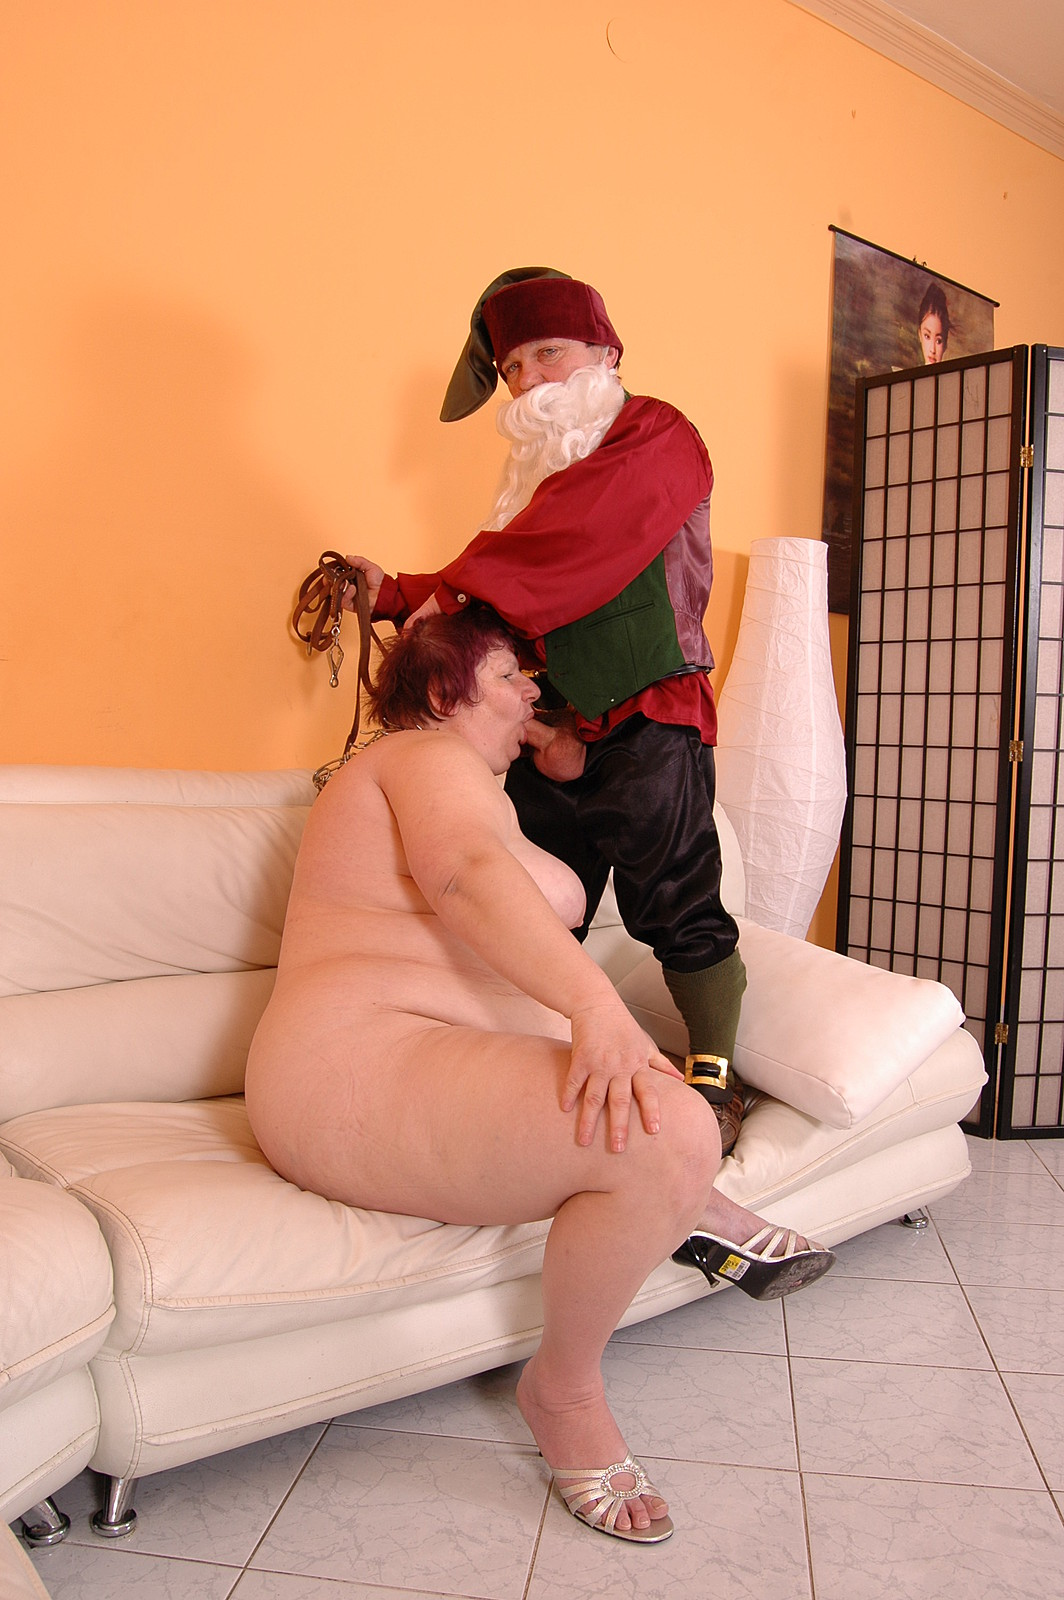 Dwarf rides dildo fucking photos